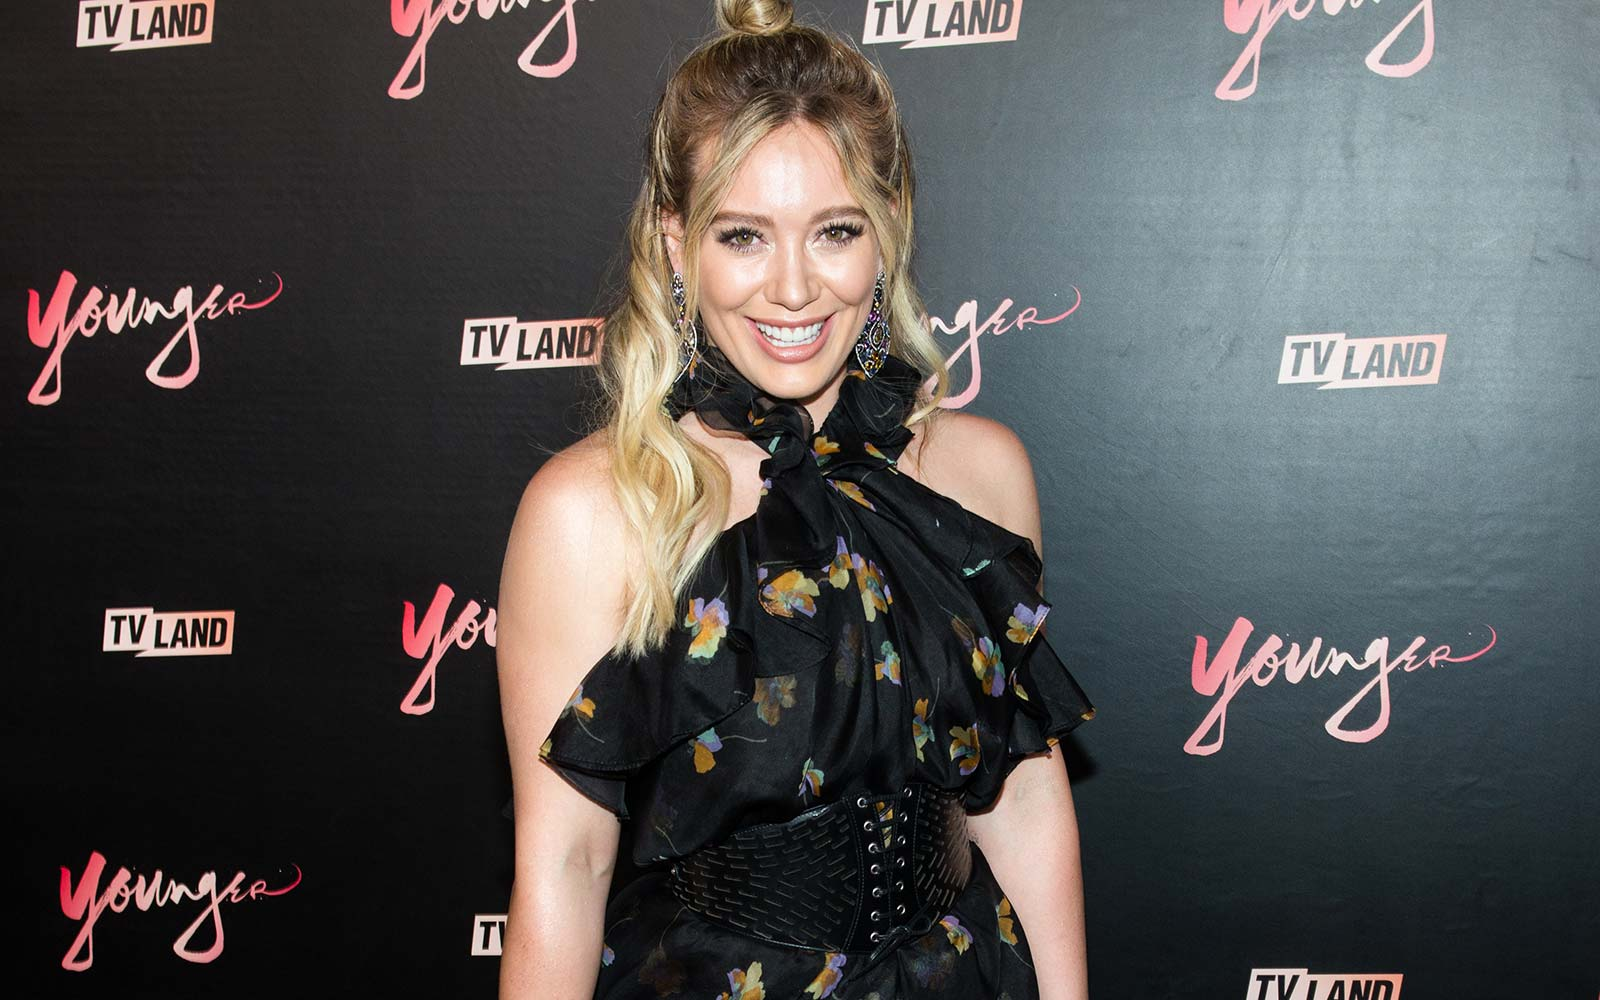 Hilary Duff Robbed After Sharing Vacation Photos on Instagram